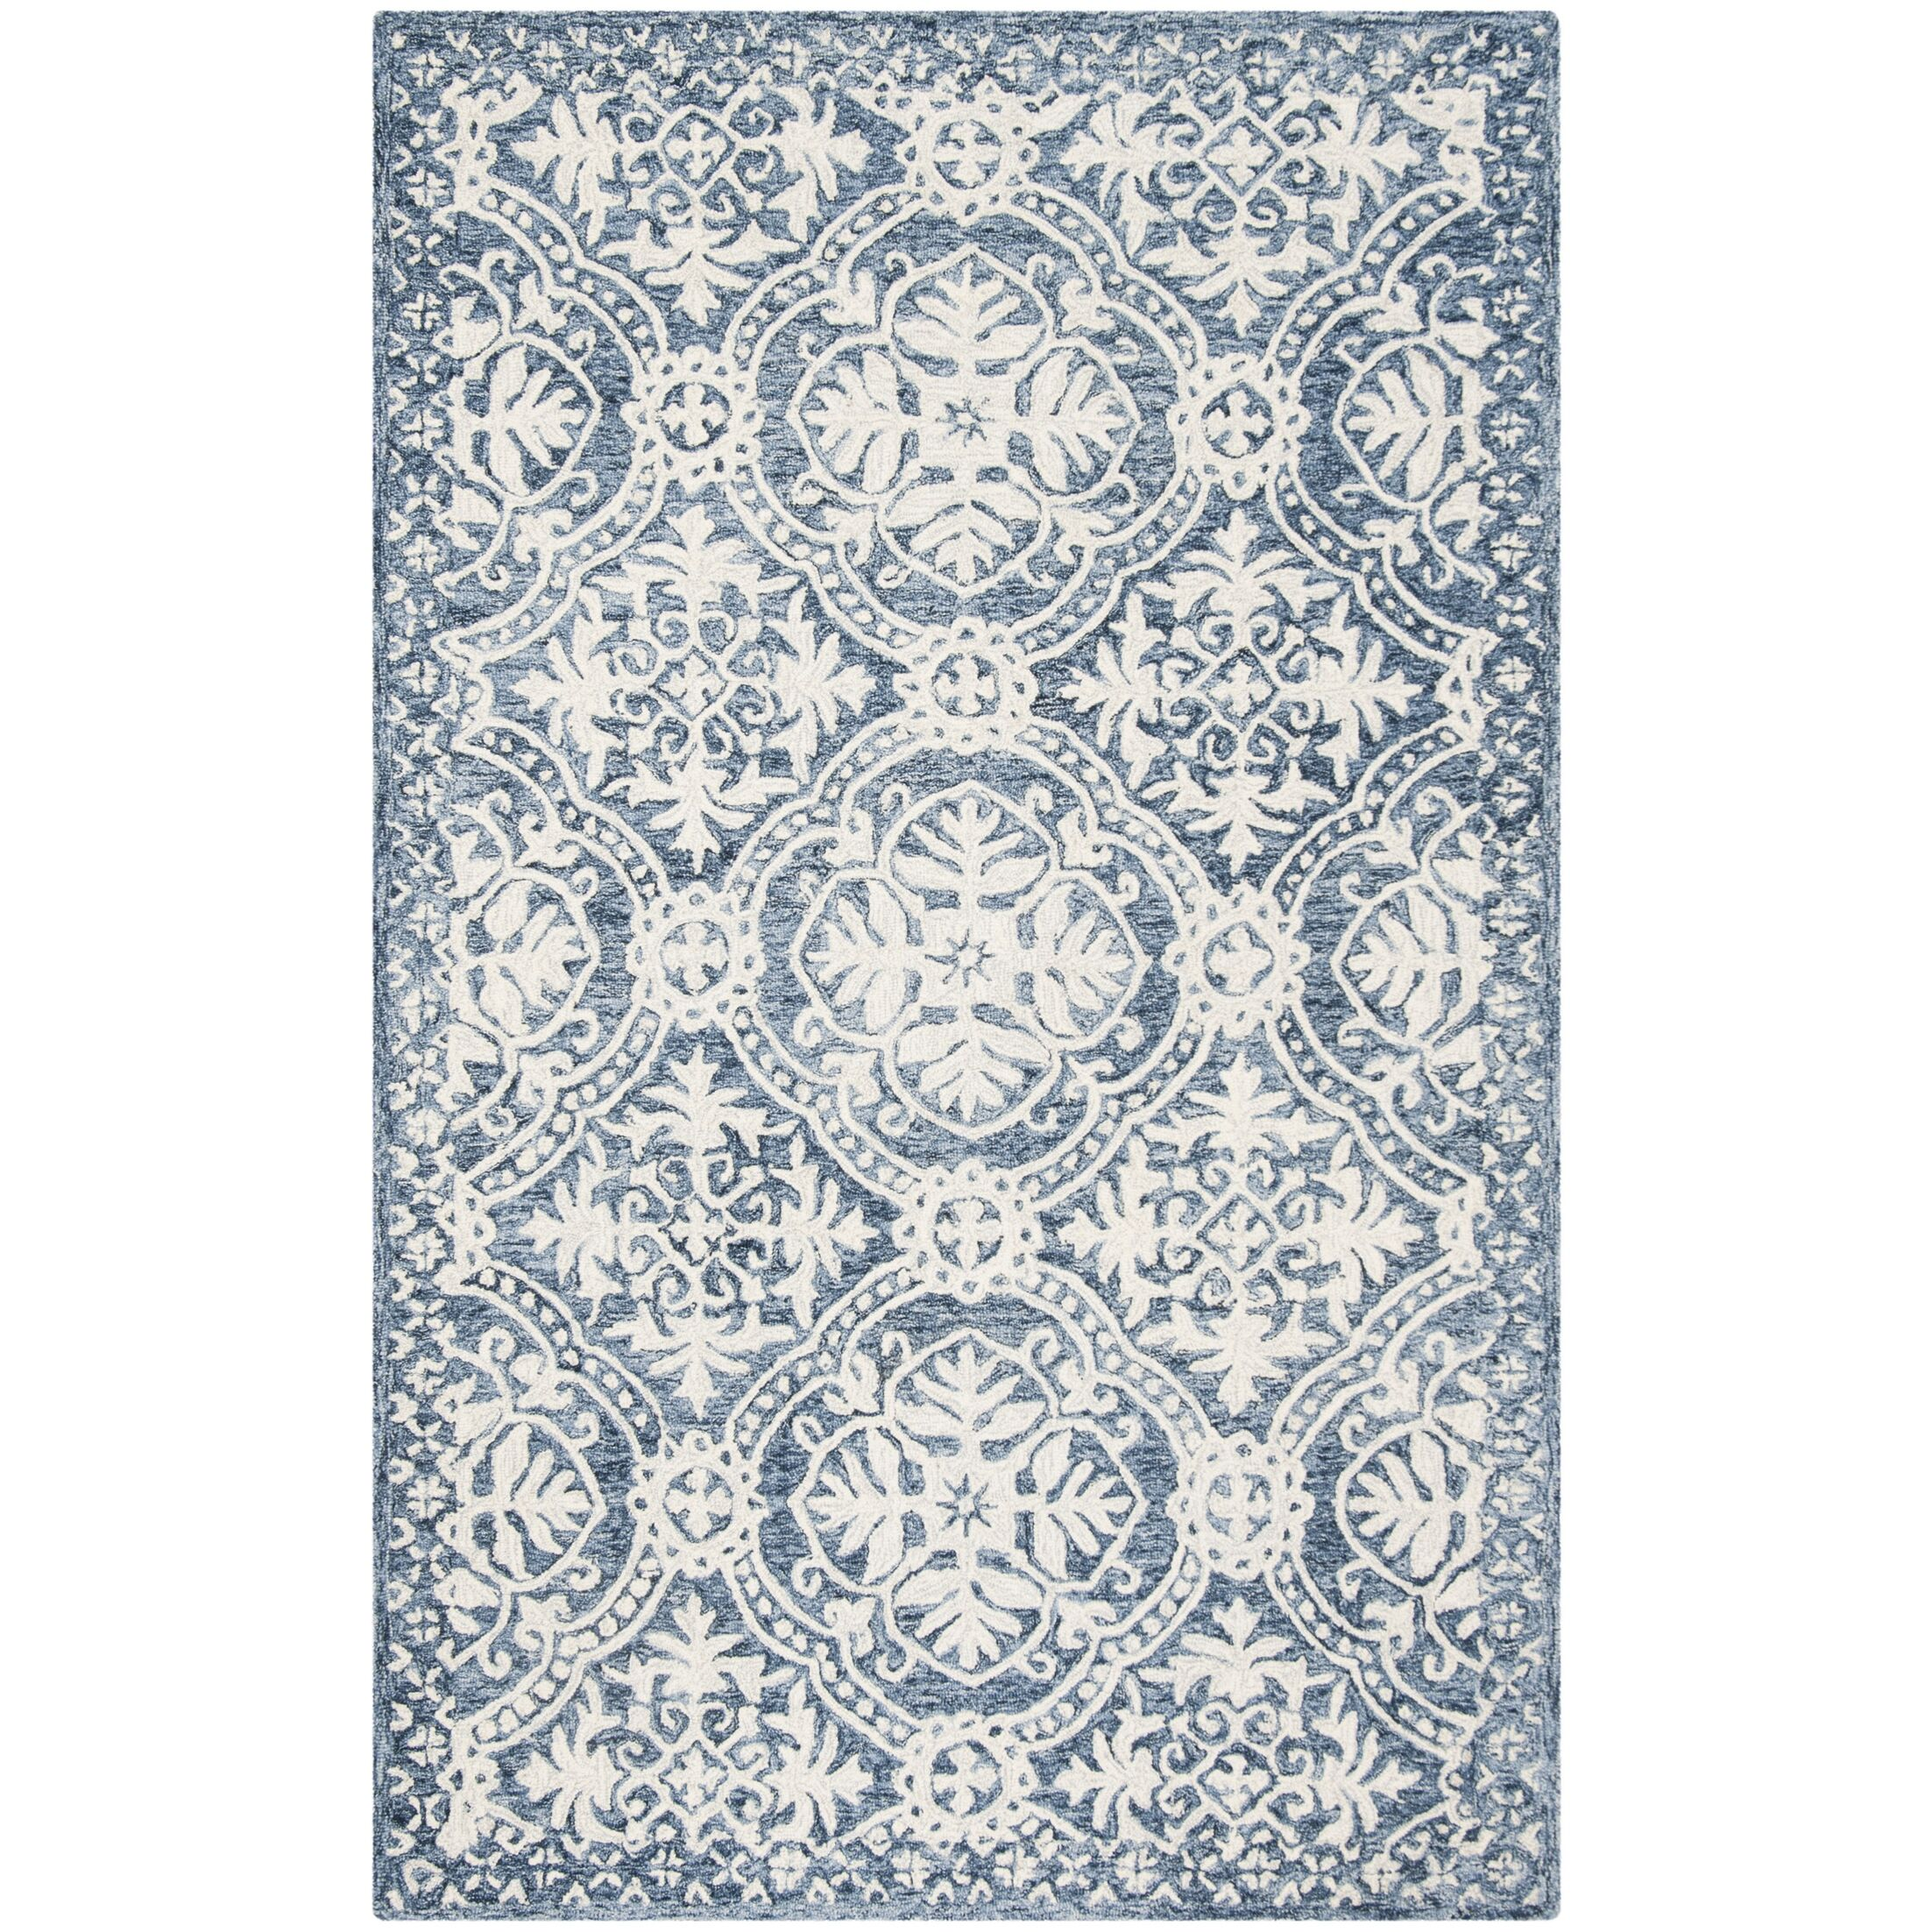 Salerna Hand-Tufted Wool/Cotton Blue/Ivory Area Rug Rug Size: Rectangle 5' x 8'